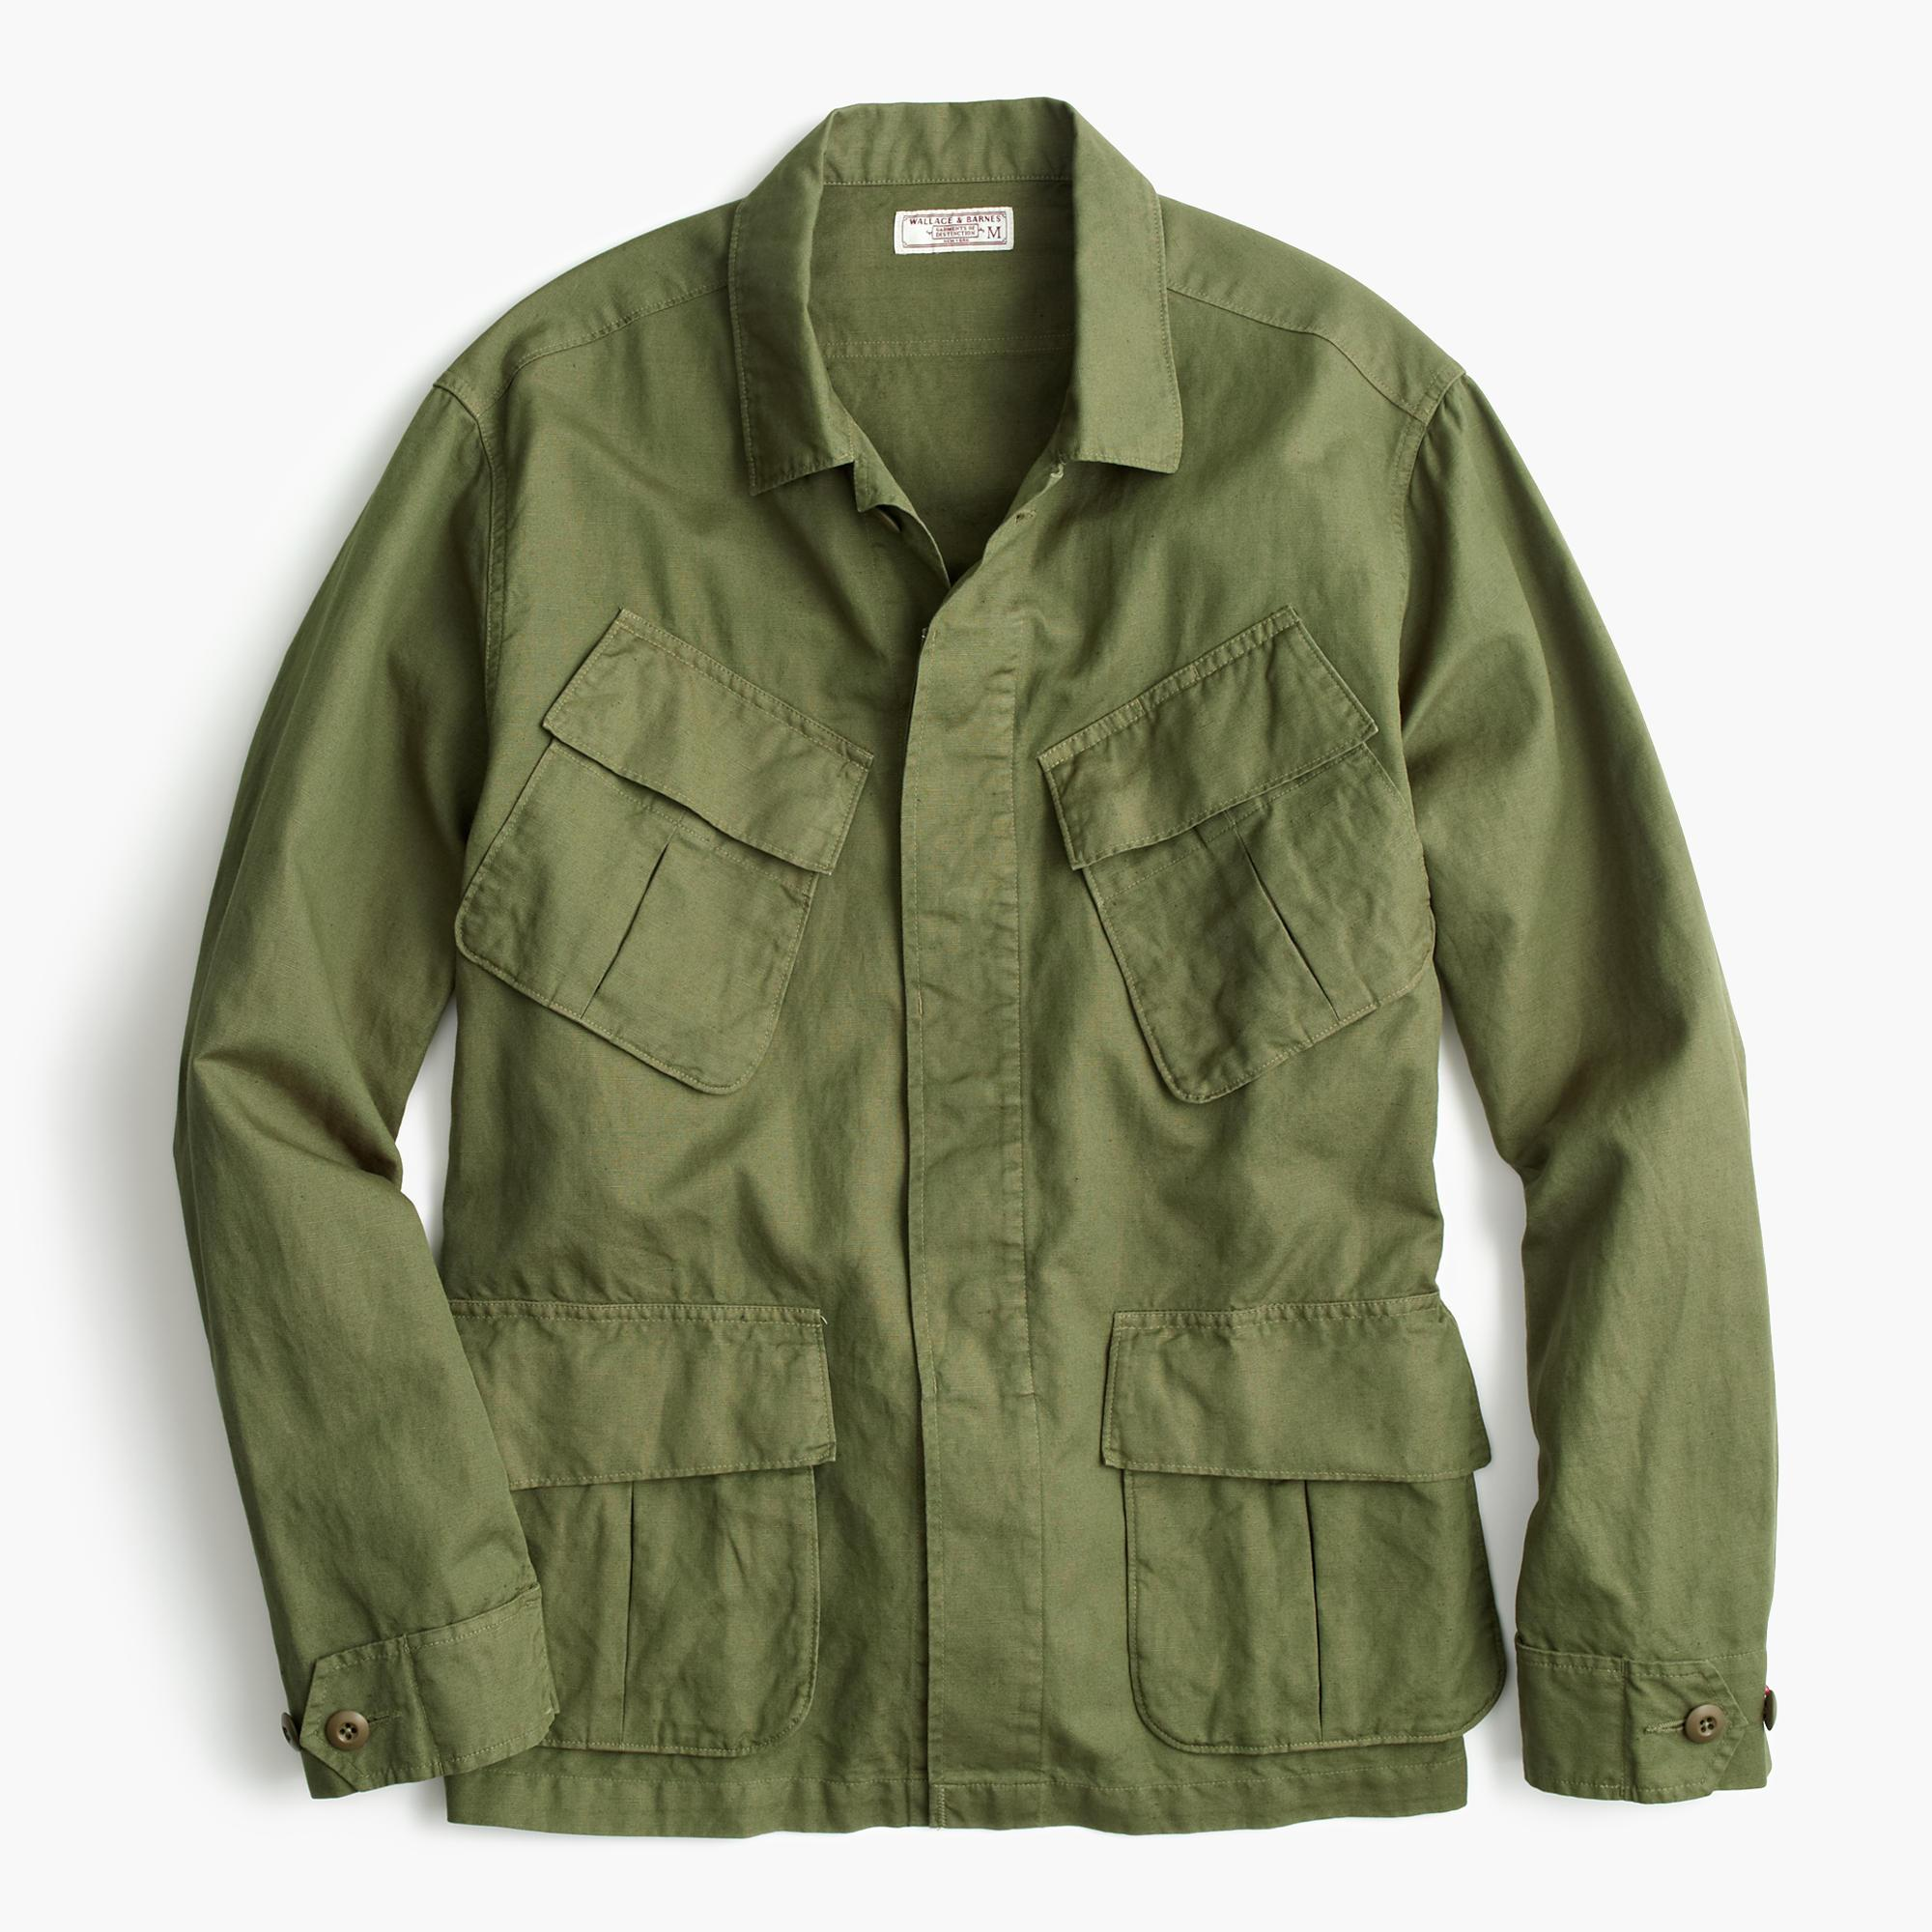 Wallace Barnes Cotton Linen Military Shirt In